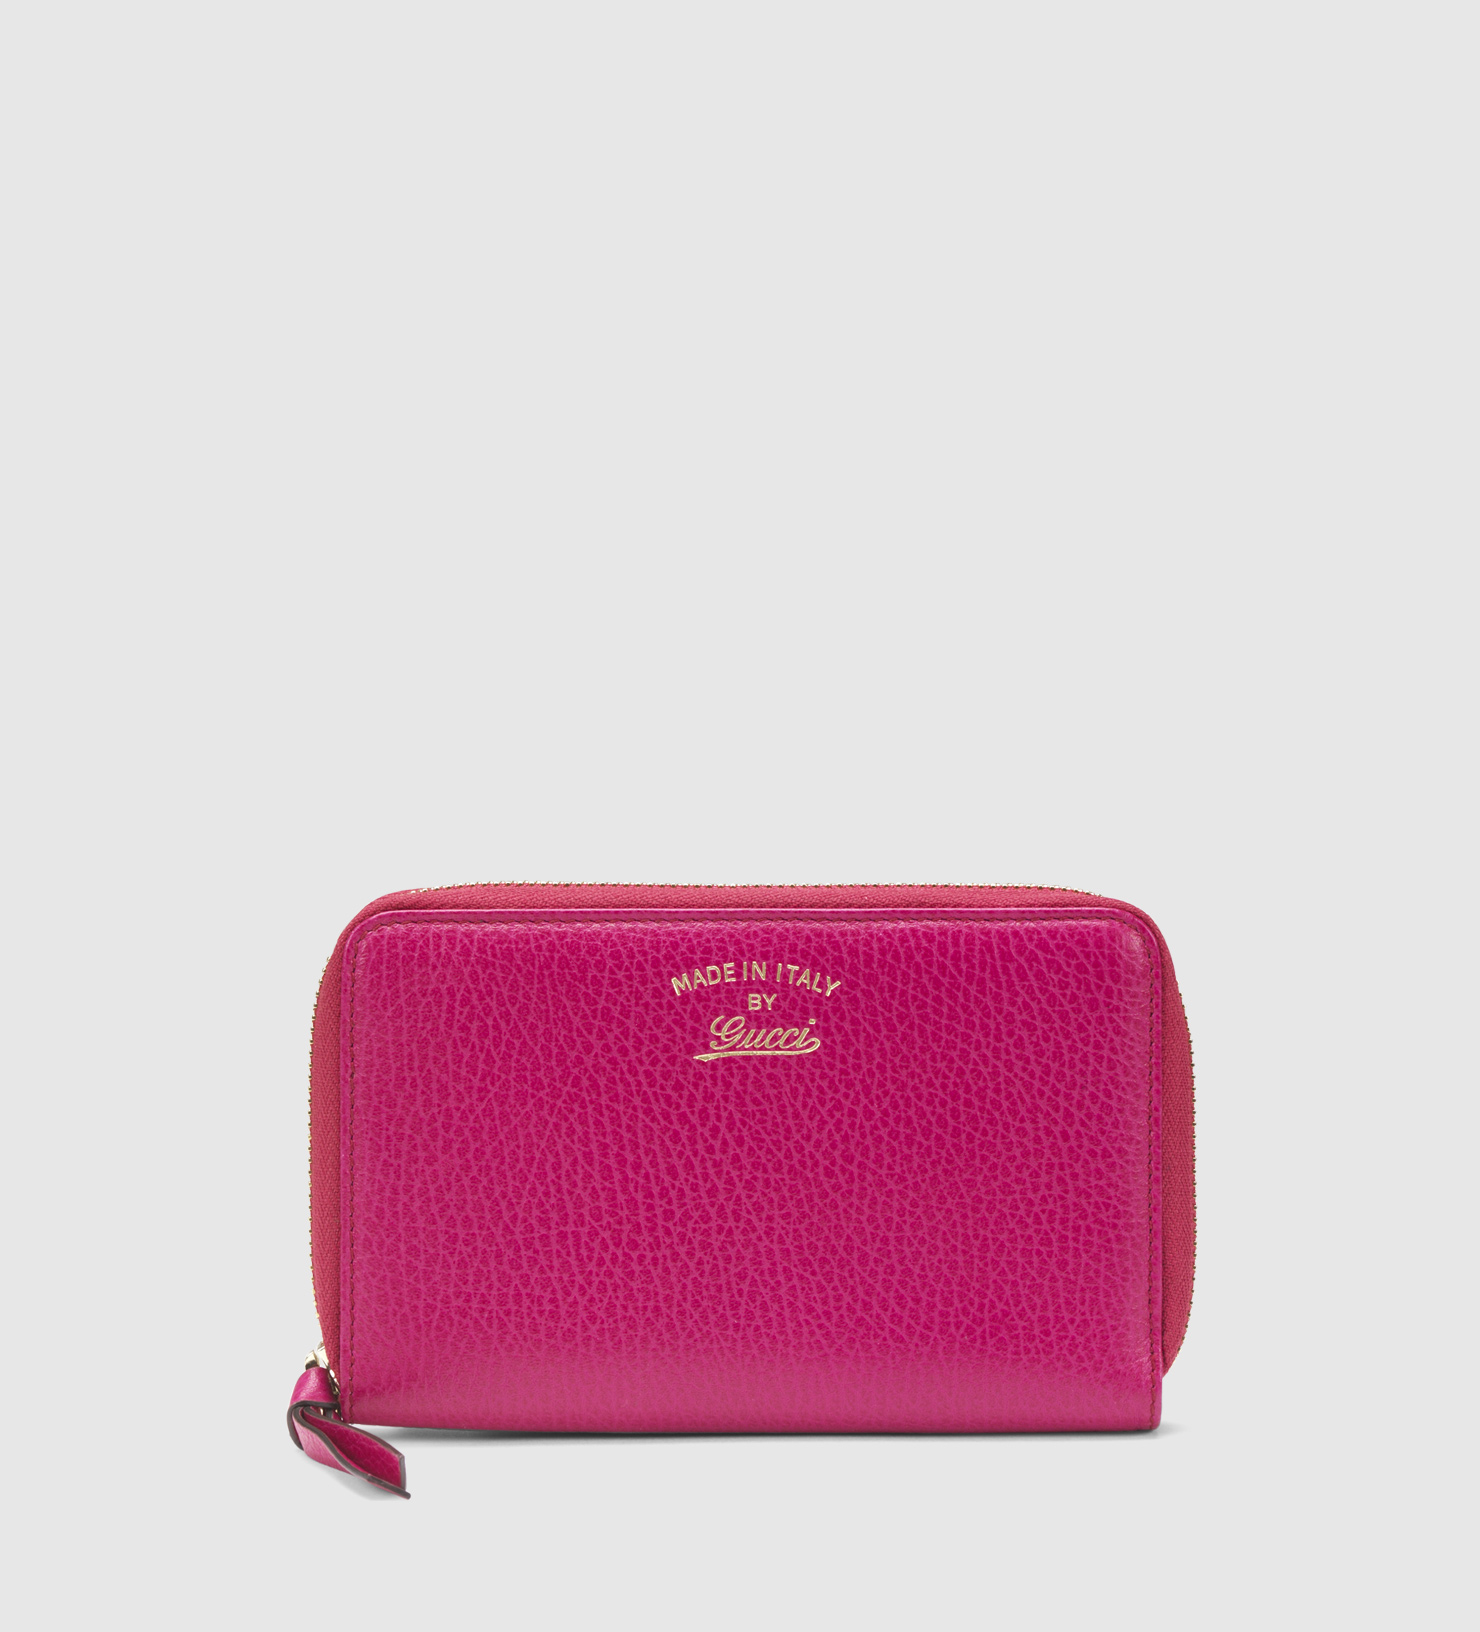 d861bc9accfe Gucci Swing Leather Zip Around Wallet in Pink - Lyst